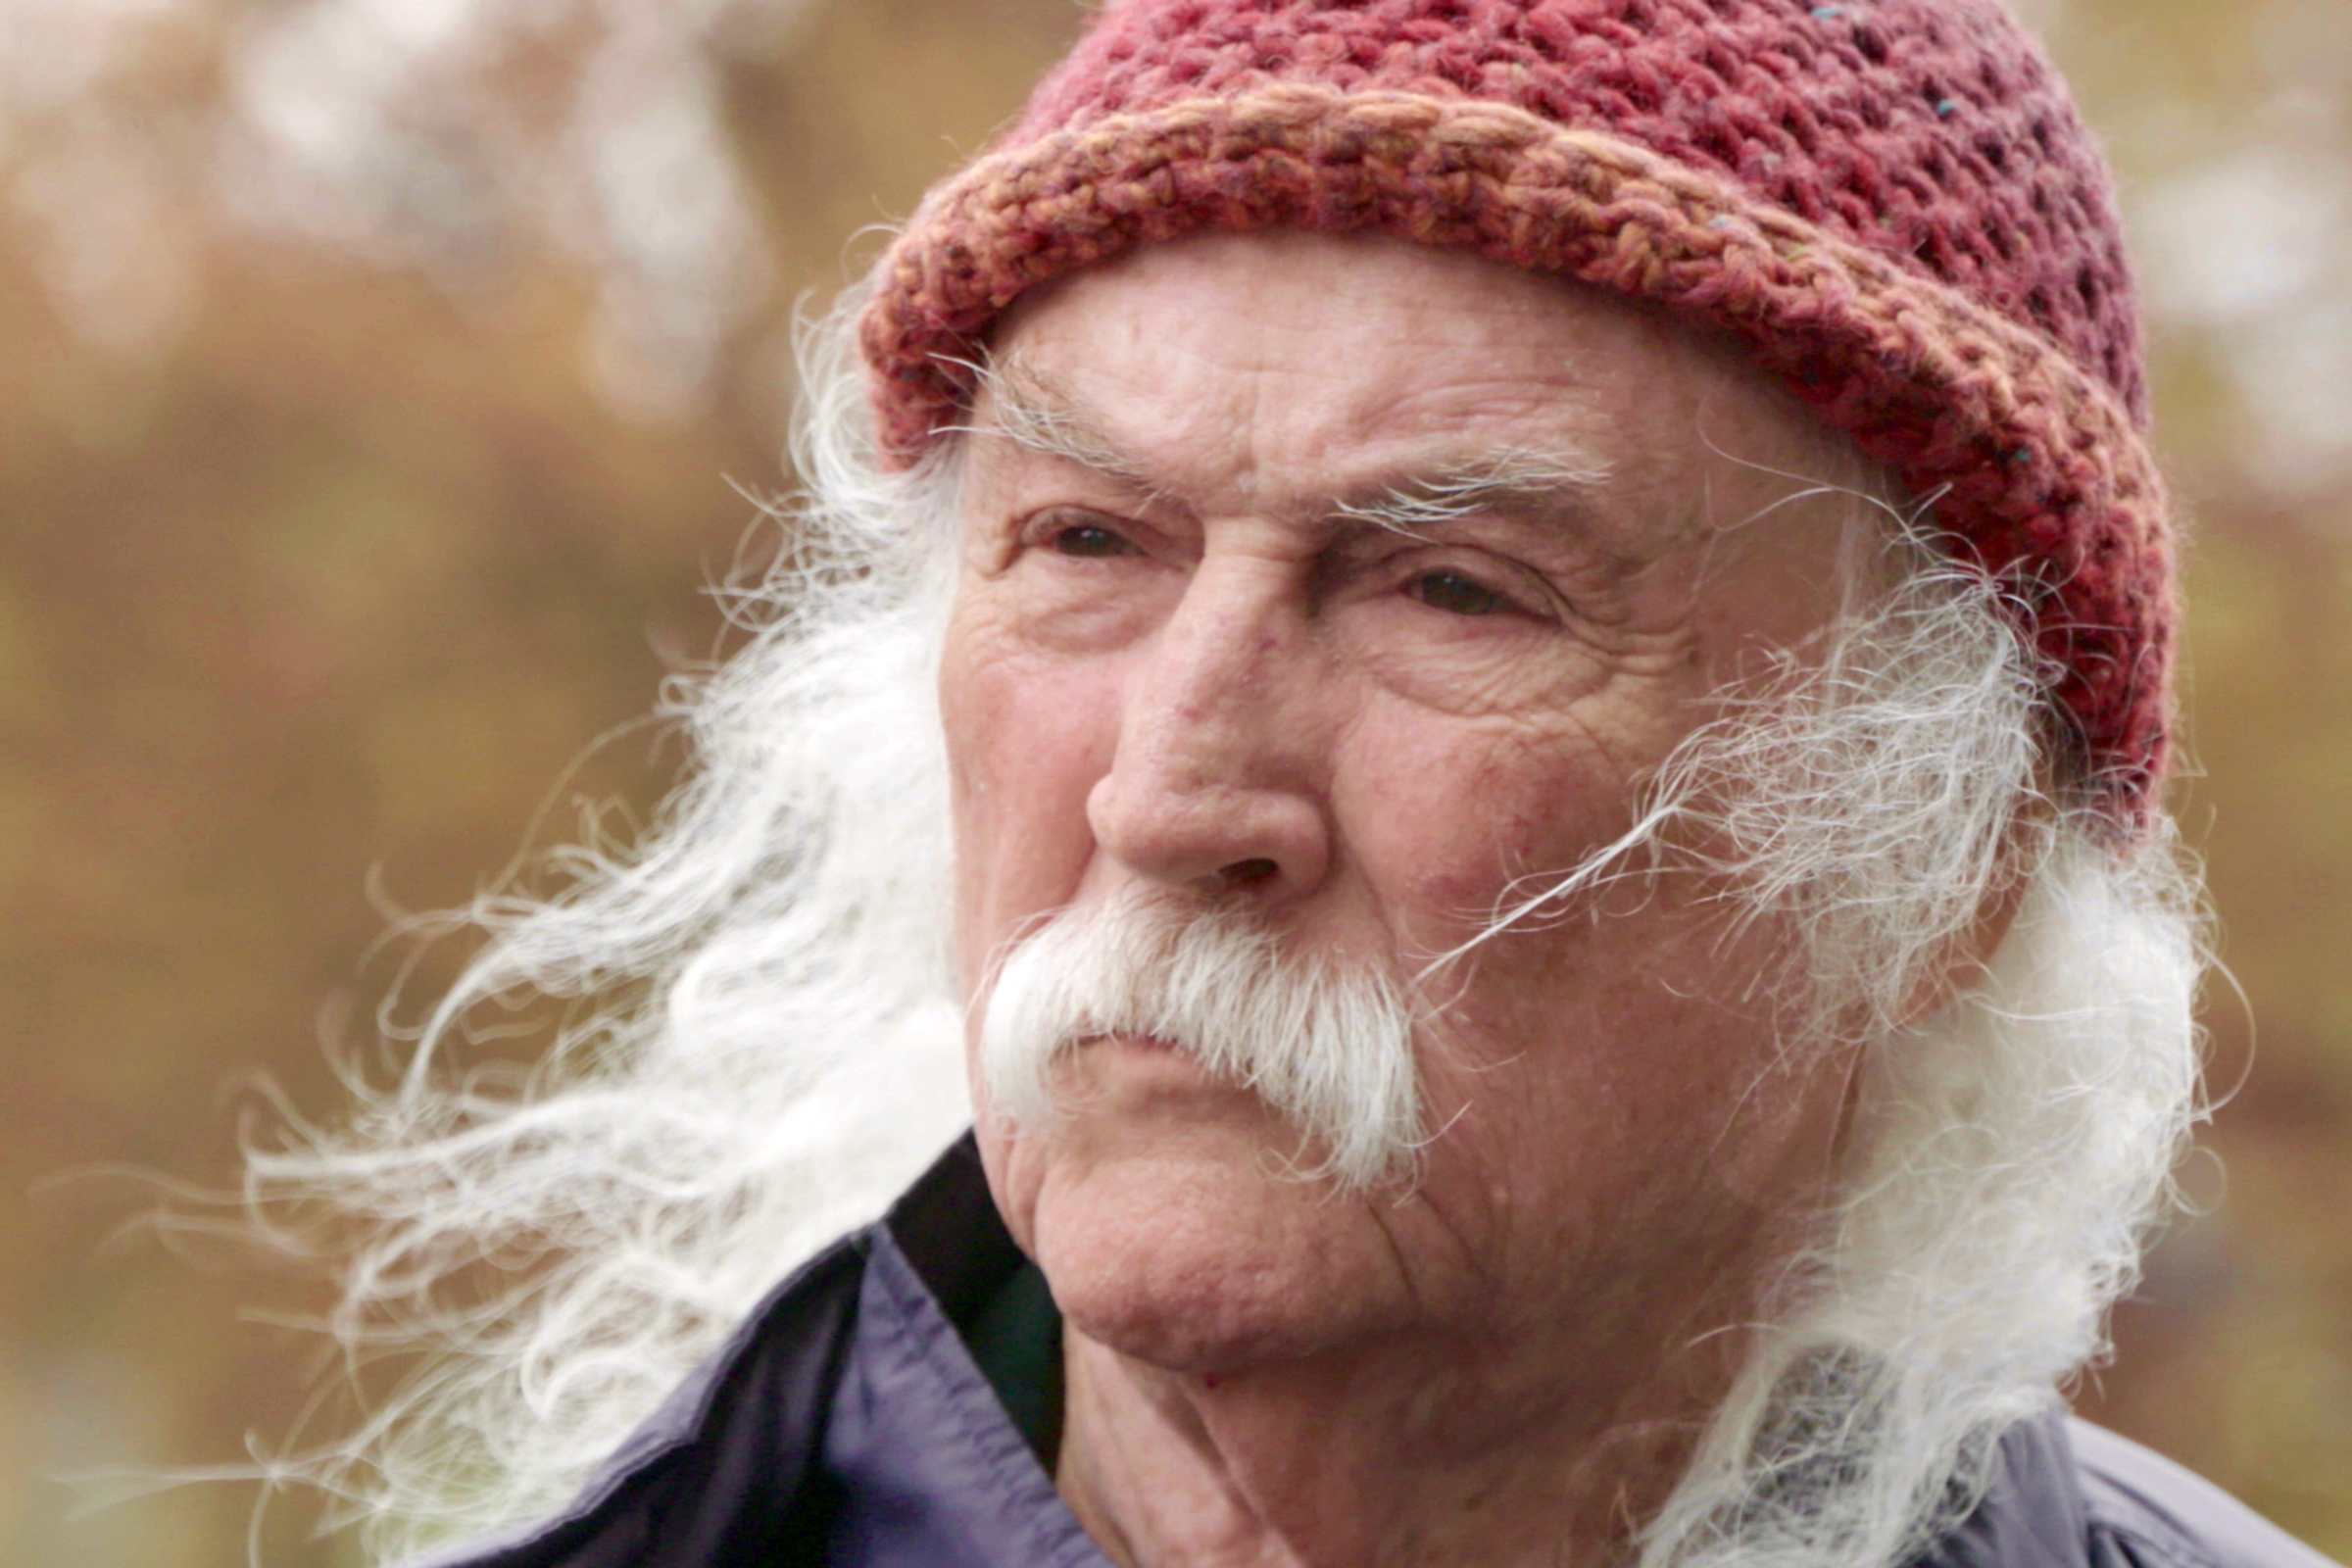 David Crosby on Looking Back Without Anger in New Doc